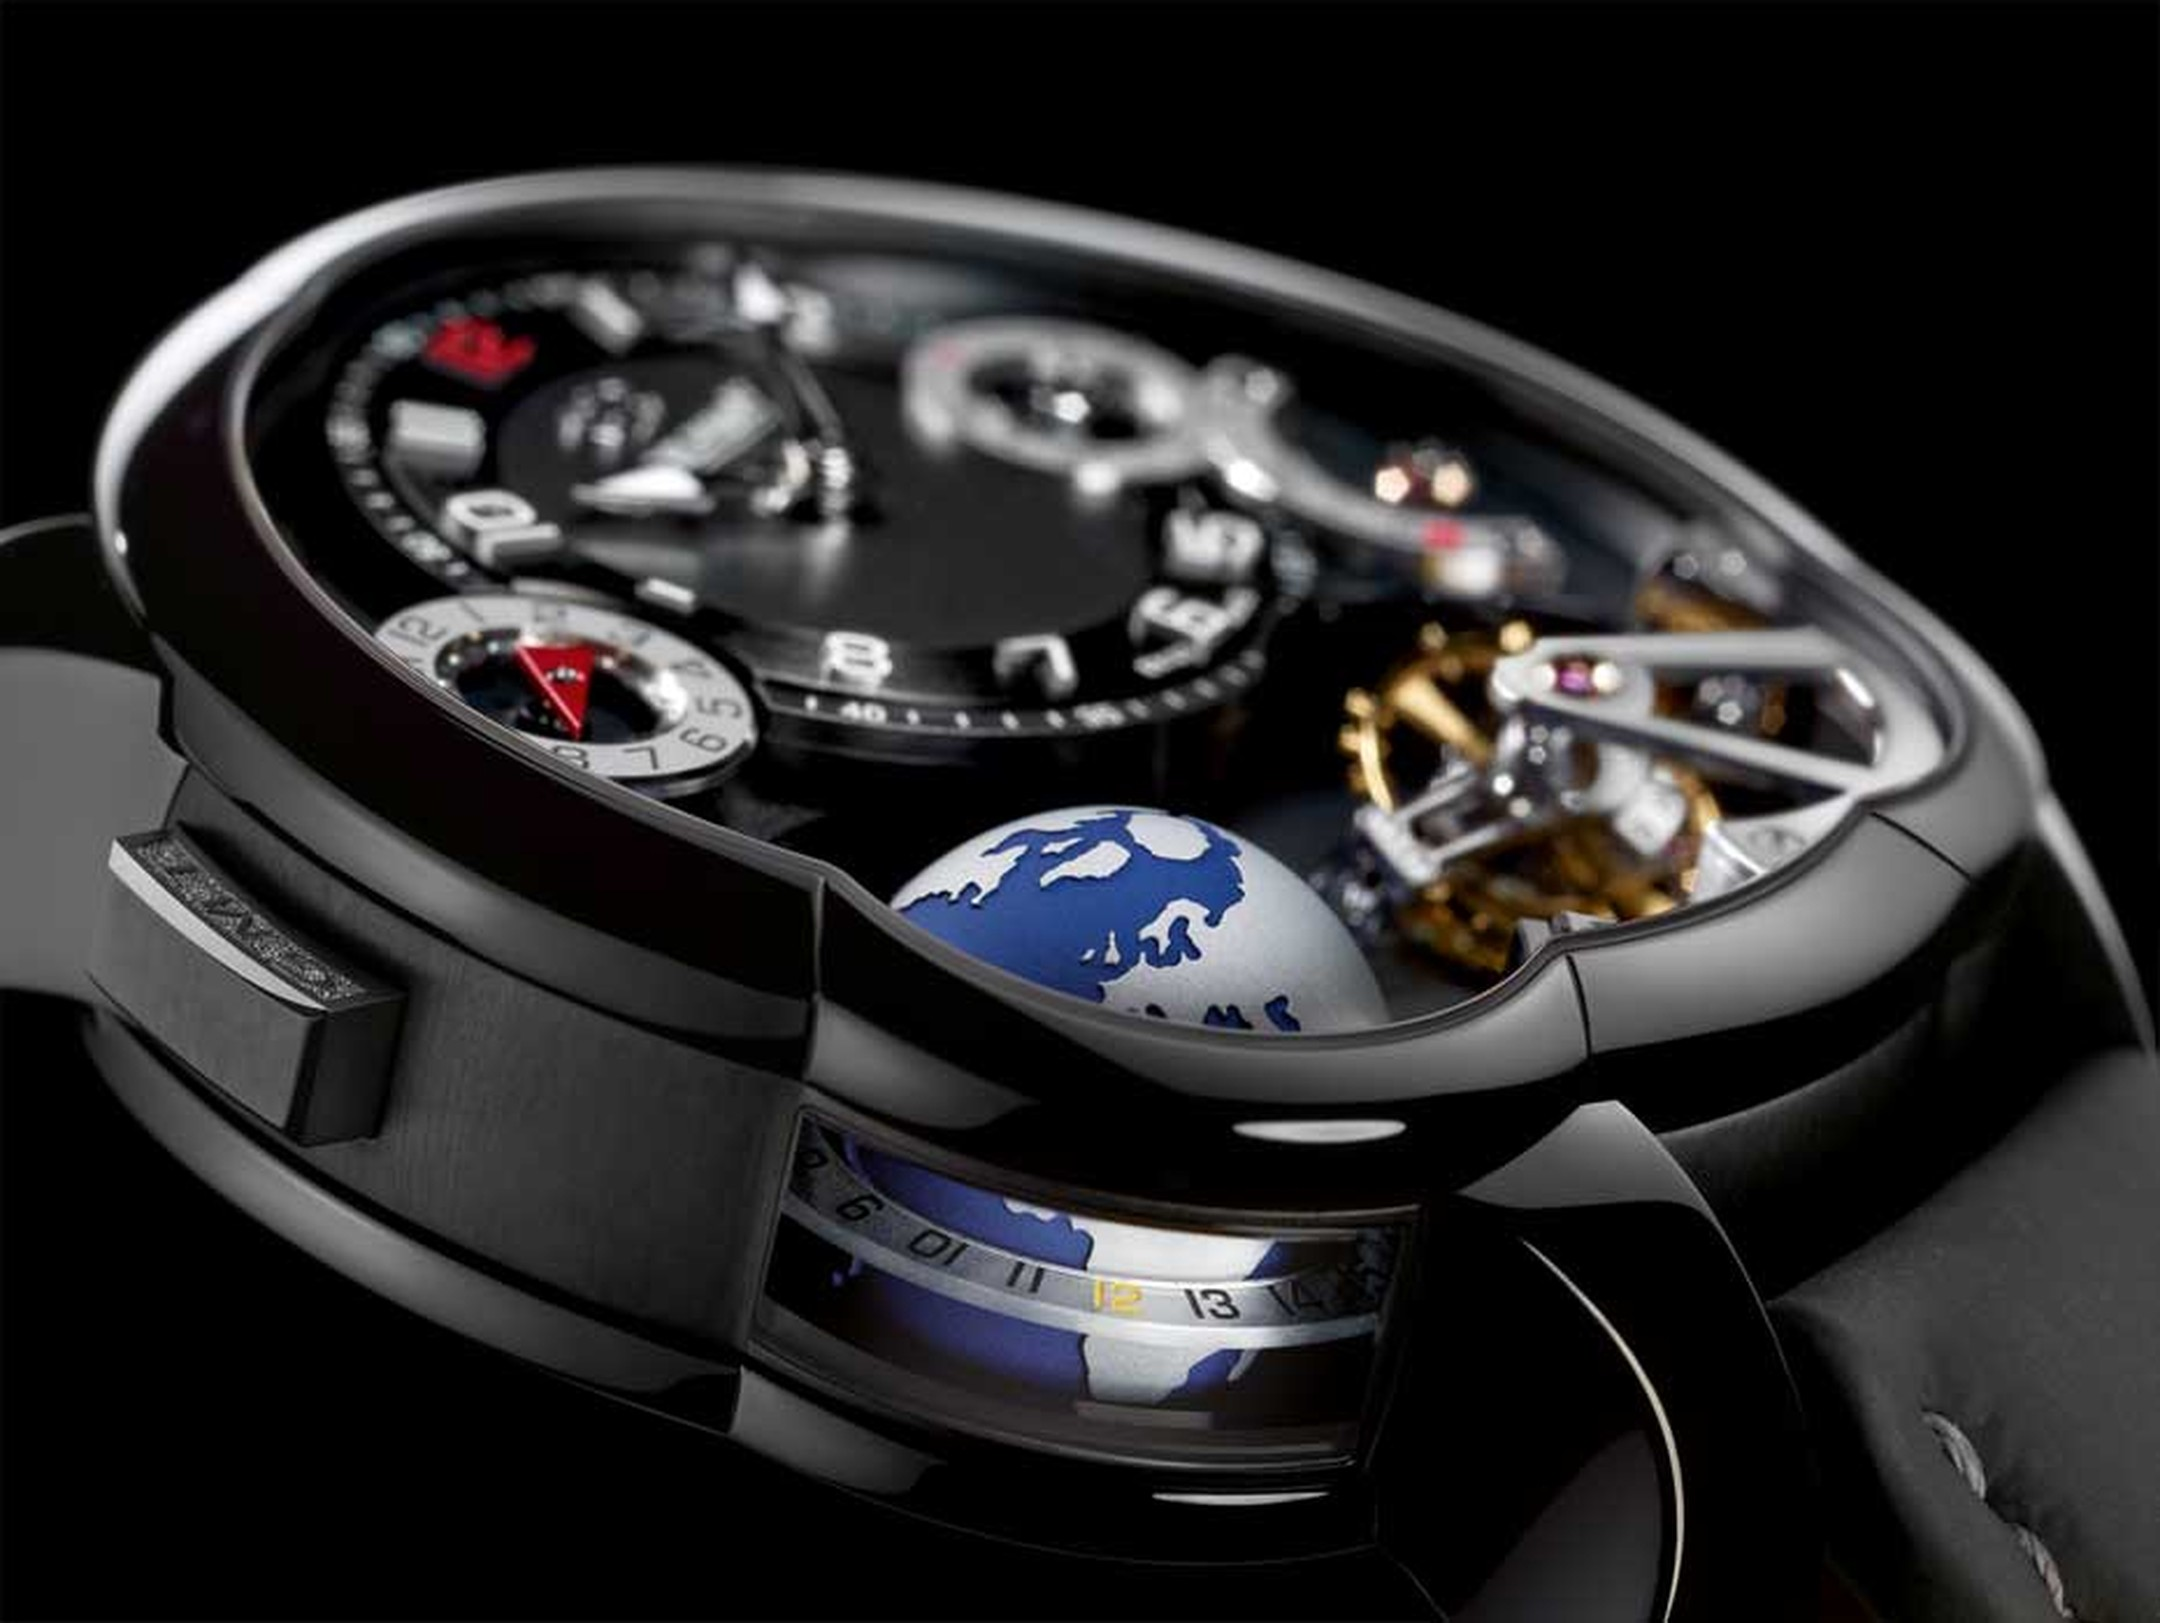 Greubel Forsey GMT is housed in a lightweight titanium case with a black ADLC coating. The 3D globe completes a rotation every 24 hours and gets extra light from the lateral window on the case. The inclined 24-second tourbillon is a house speciality.